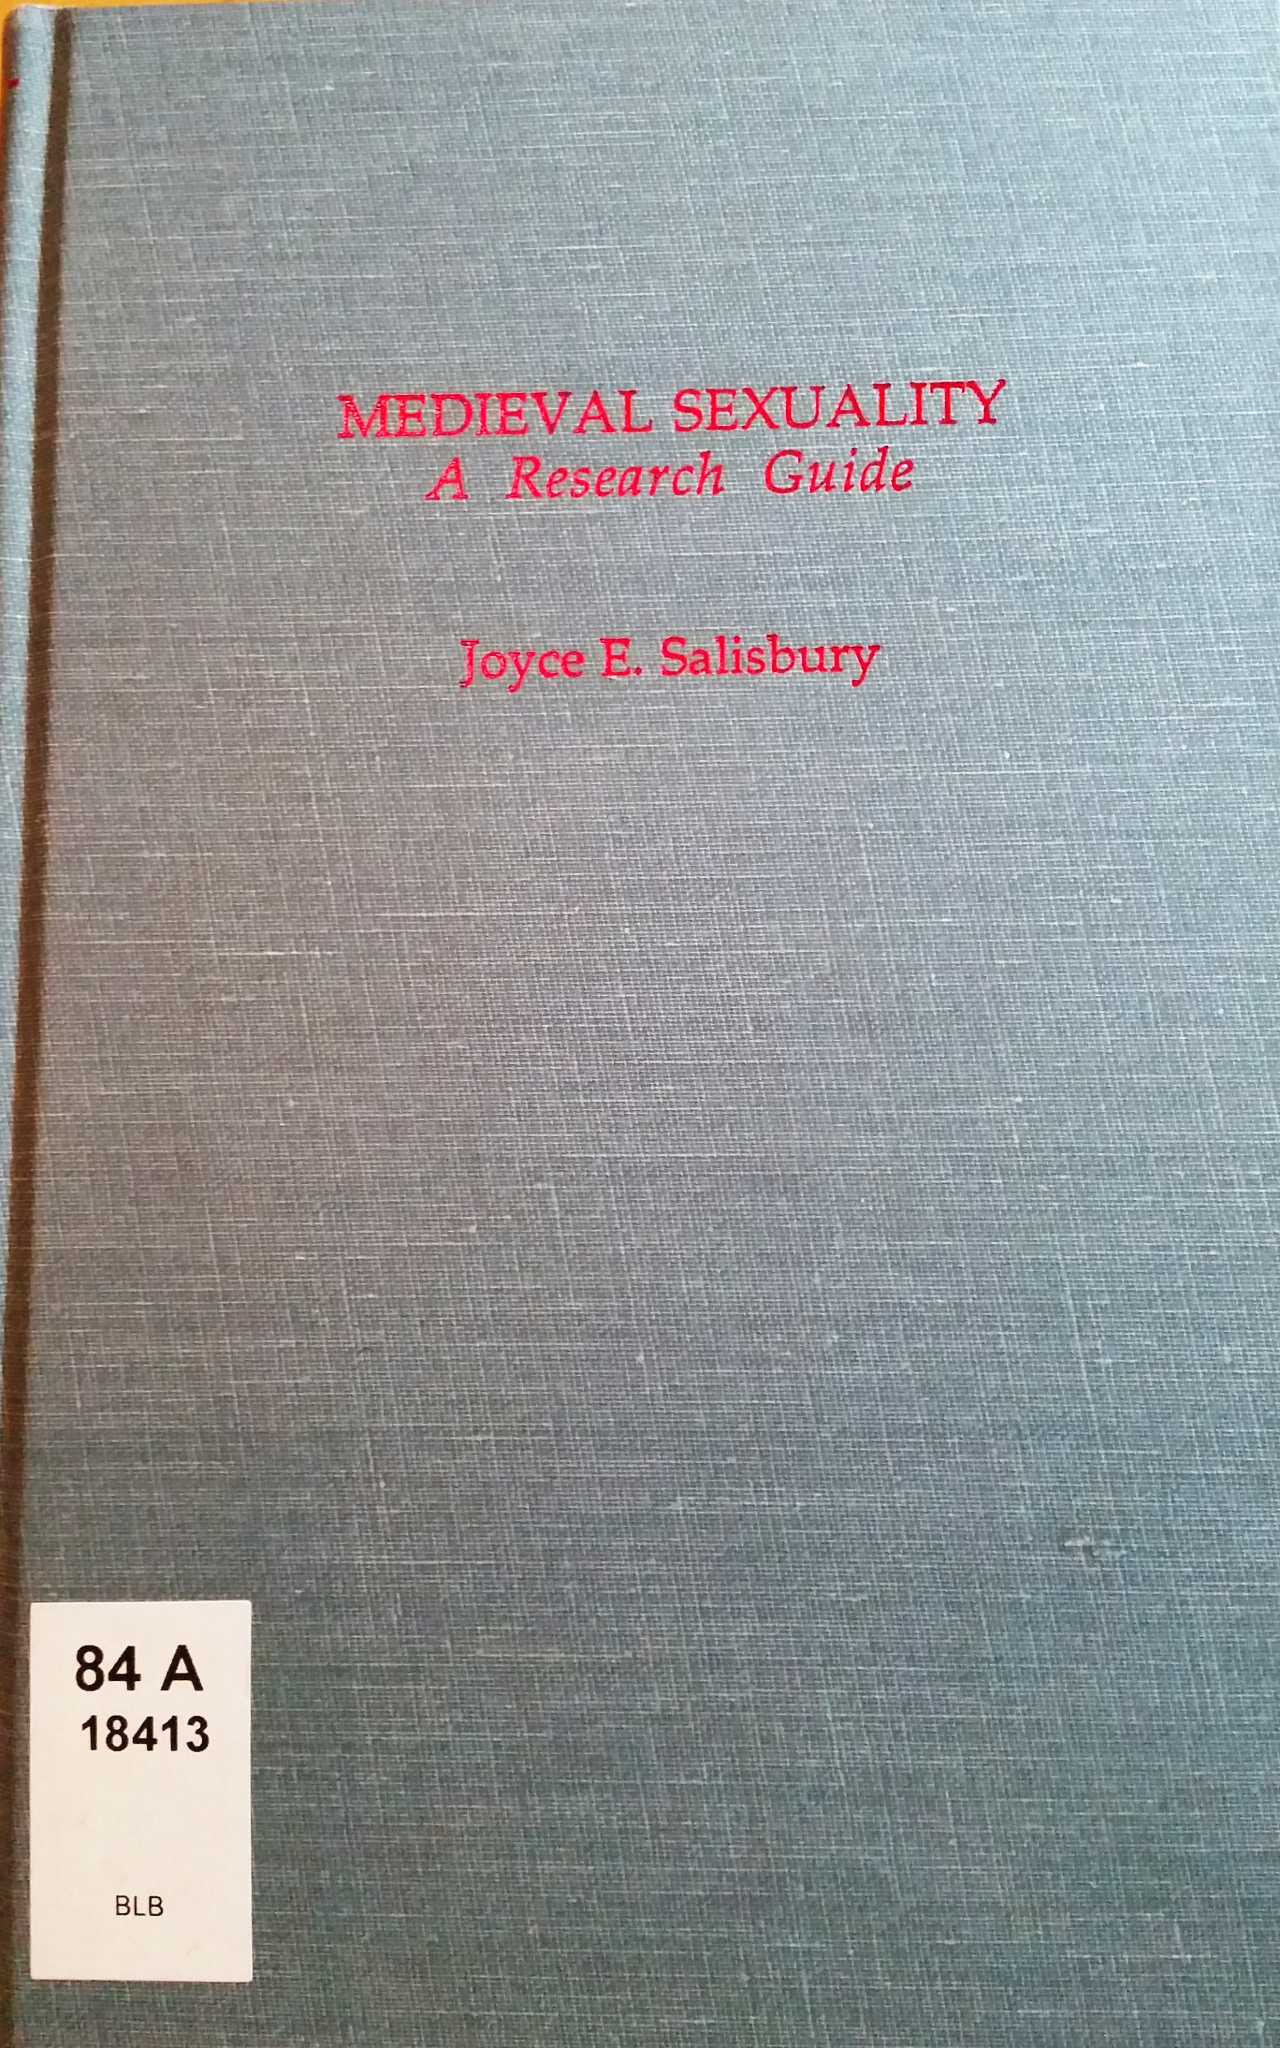 Neues Recherchematerial: Medieval Sexuality